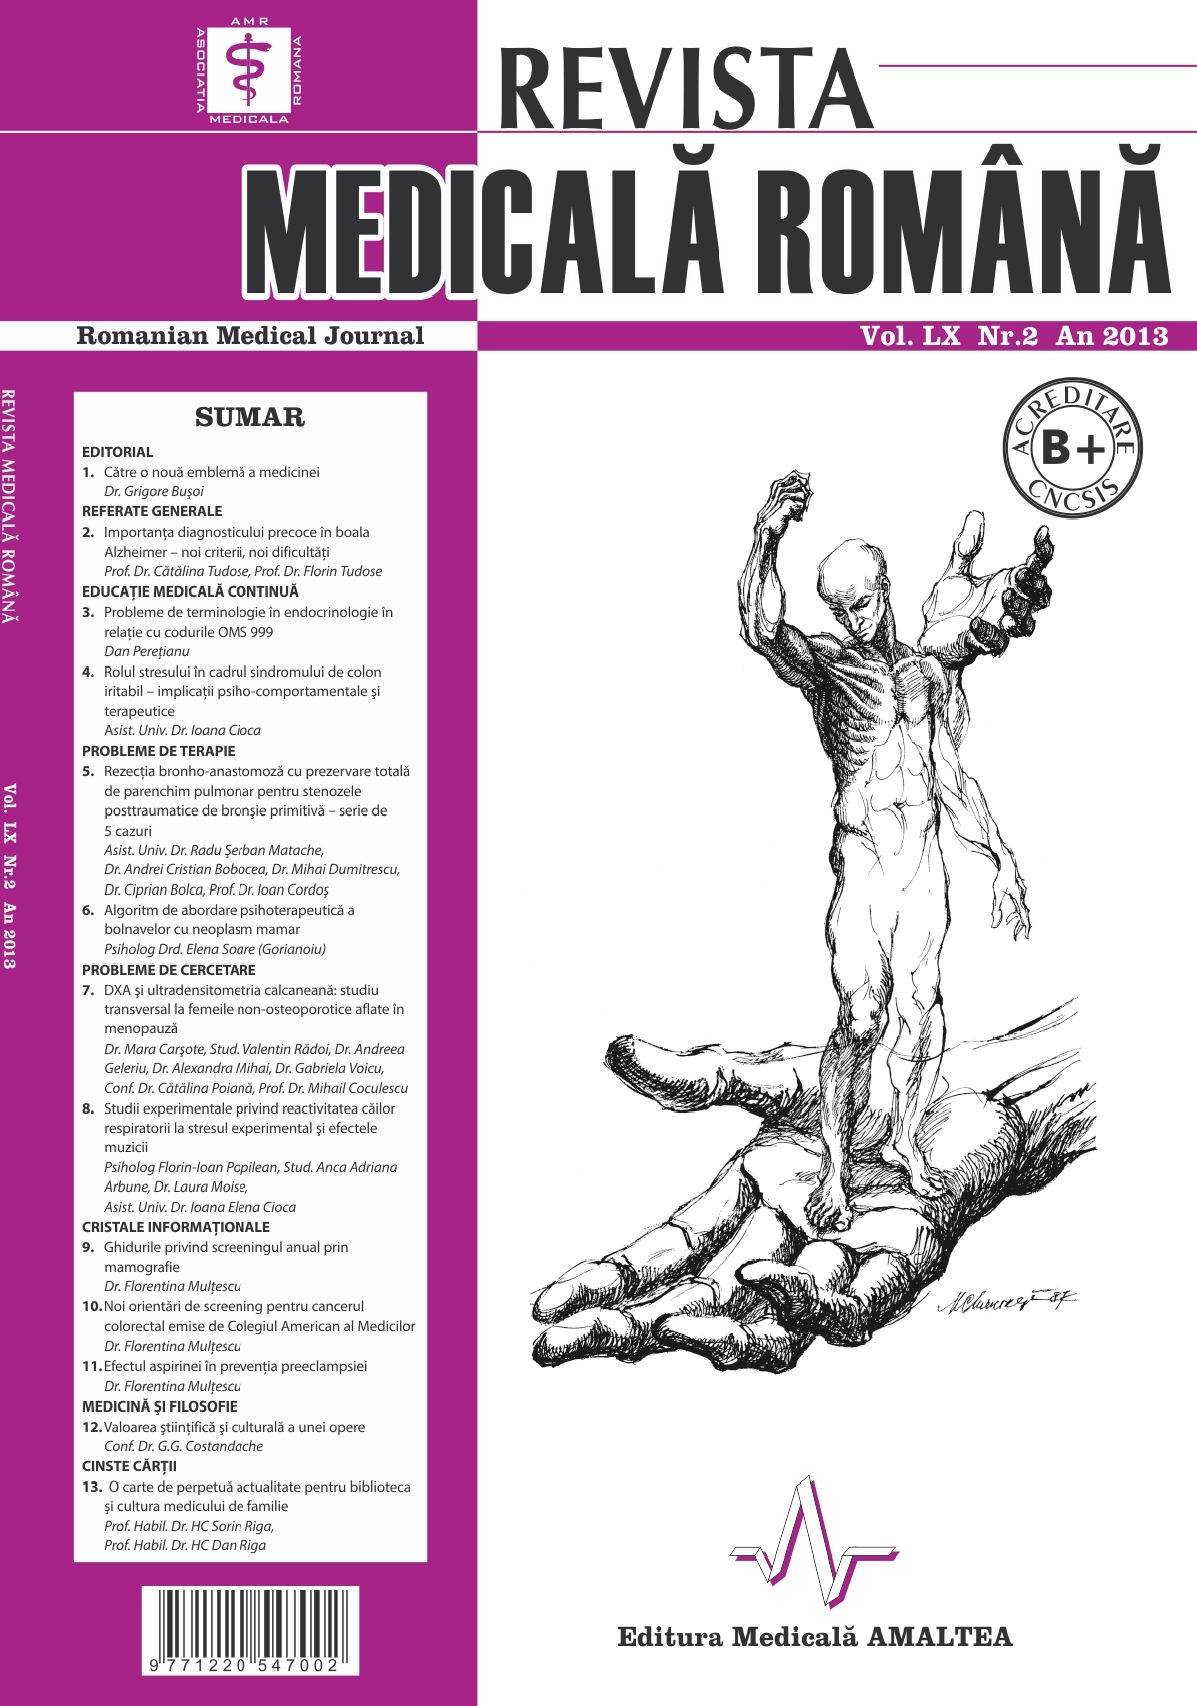 REVISTA MEDICALA ROMANA - Romanian Medical Journal, Vol. LX, Nr. 2, An 2013